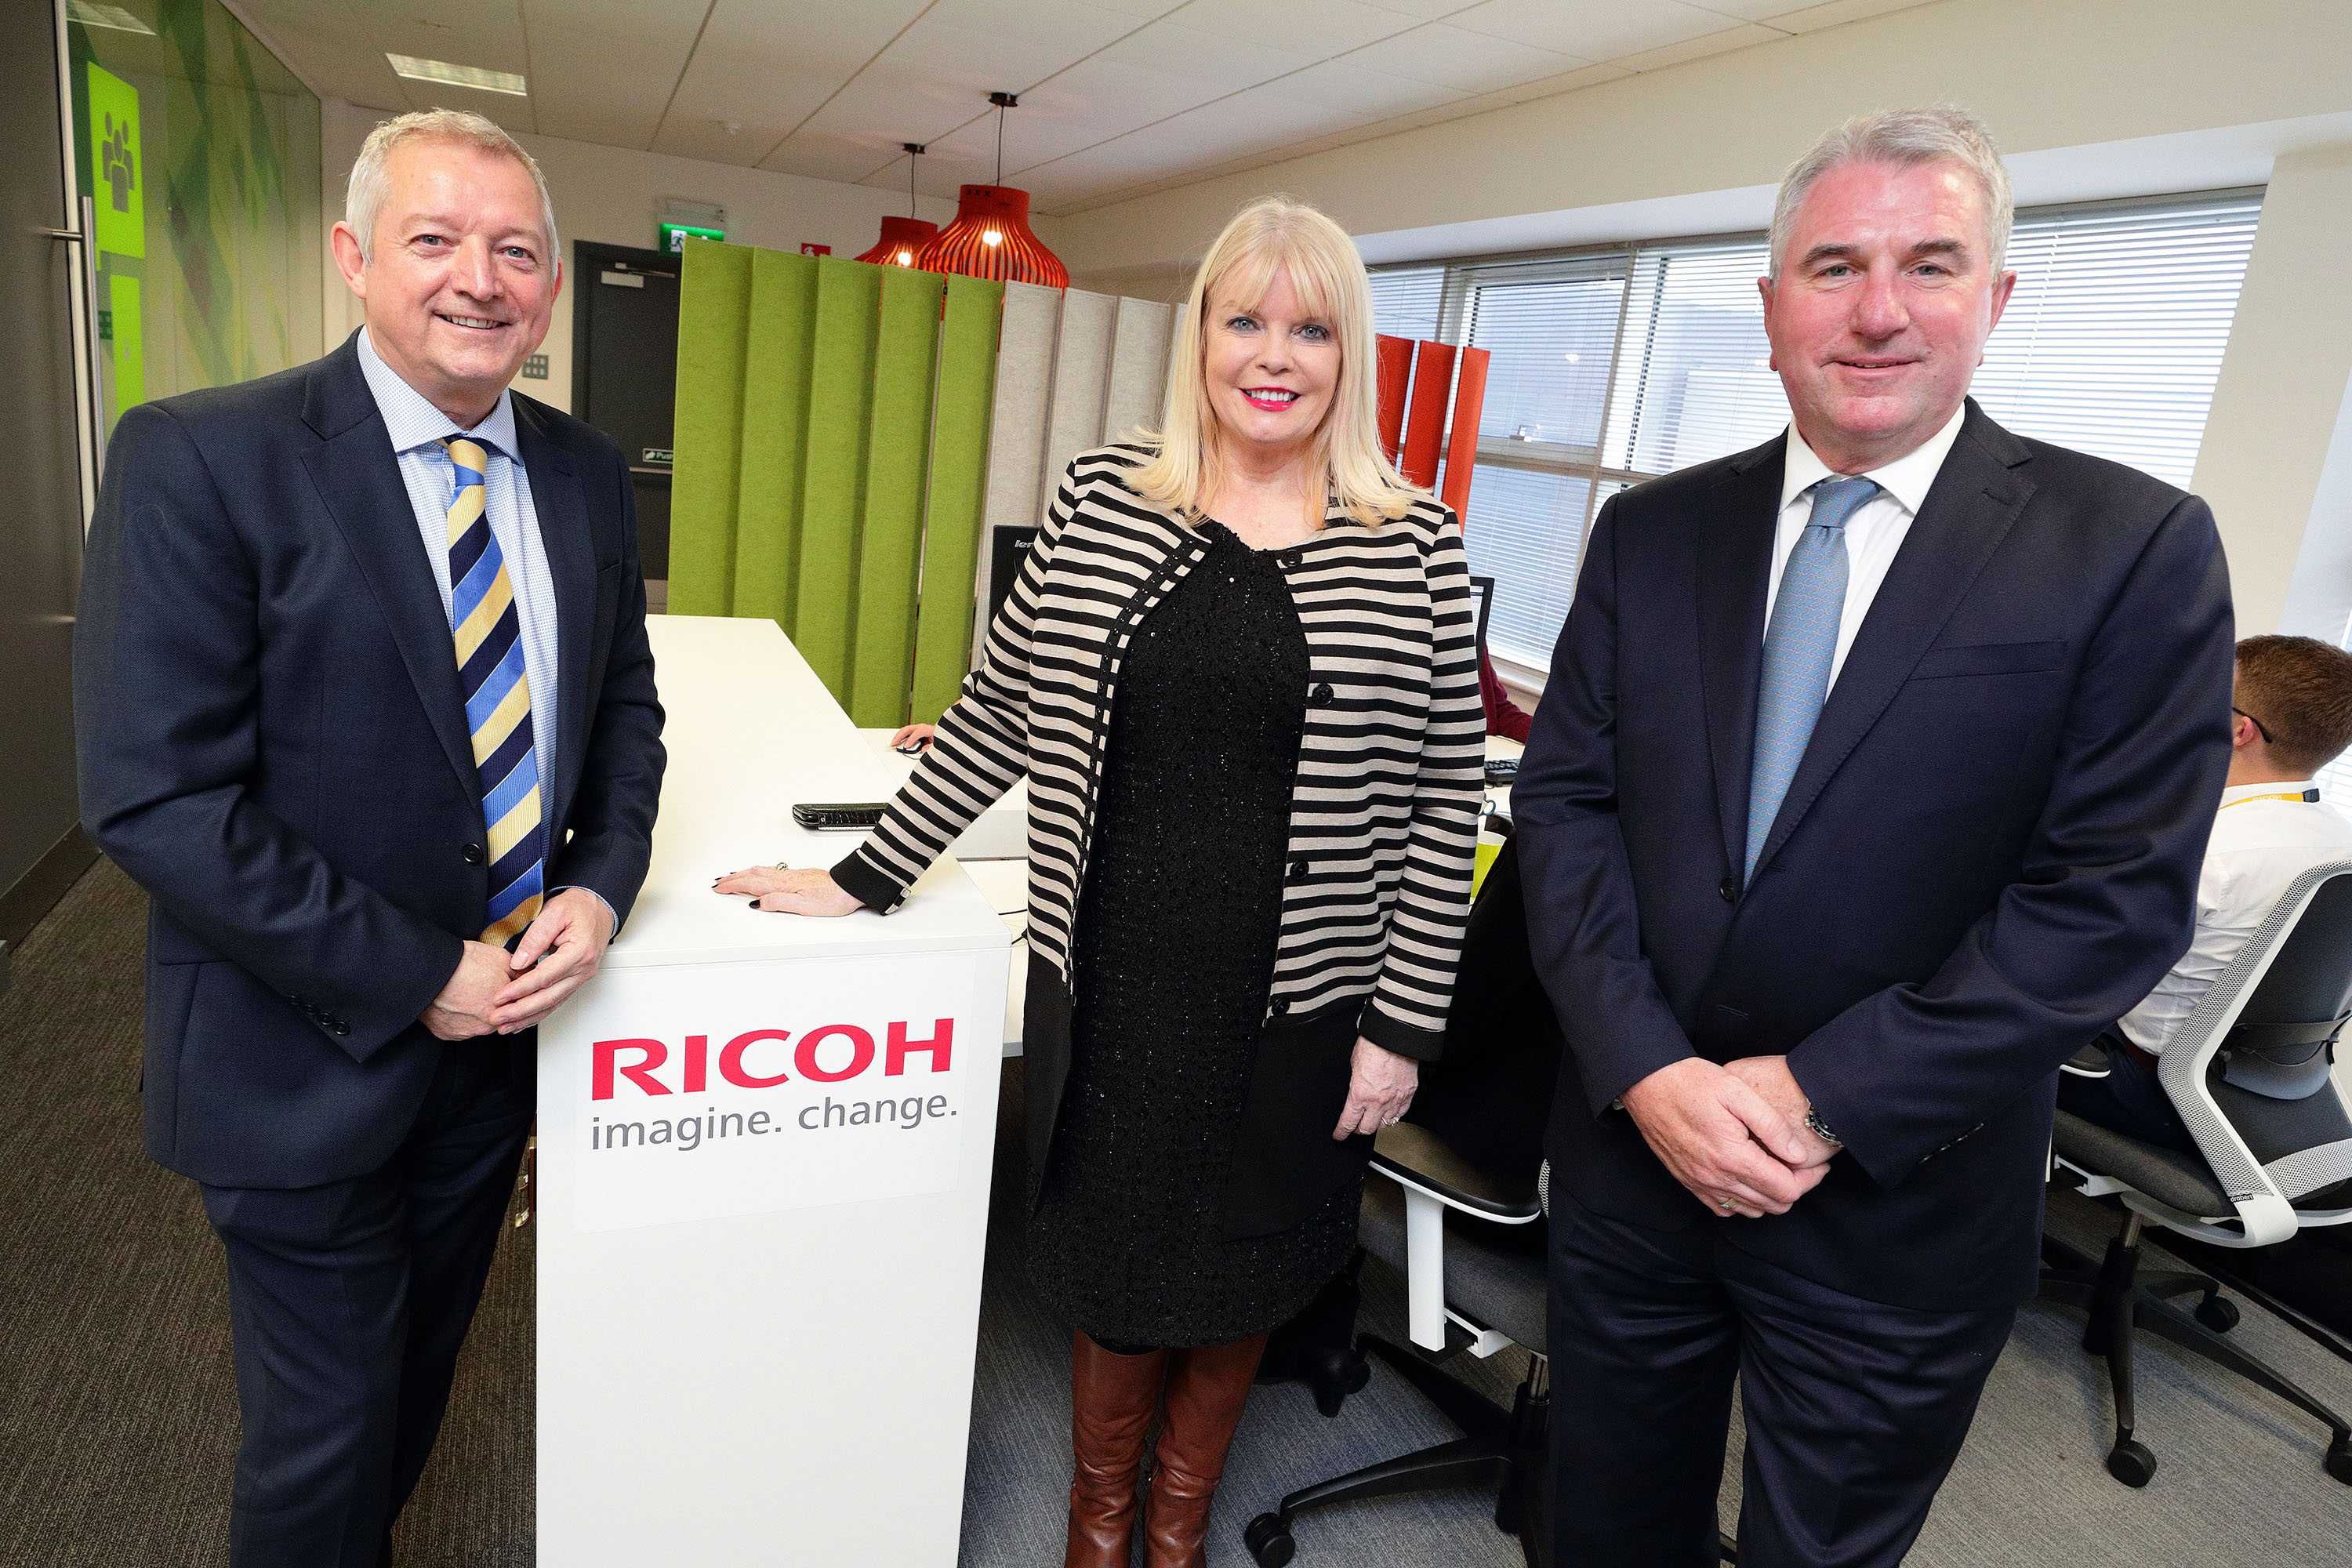 (3)Pictured at the opening of Ricoh's new Irish headquarters in Airside Business Park, Swords, Co. Dublin are (L to R) Gary Hopwood, General Manager, Ricoh Ireland; Minister for Jobs, Enterprise & Innovation, Mary Mitchell O'Connor TD; and Phil Keoghan, CEO, Ricoh UK and Ireland